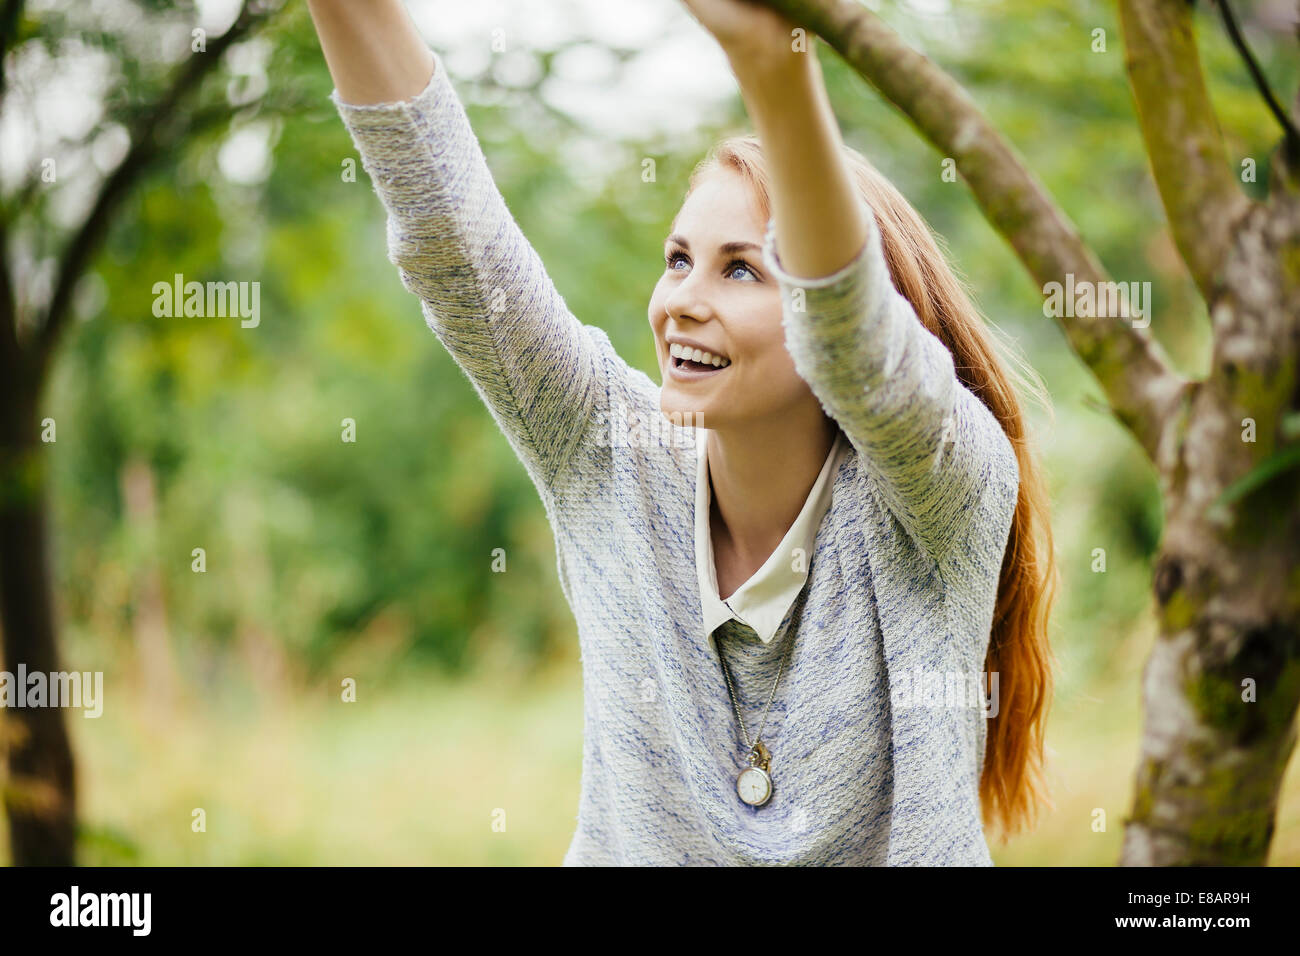 Young woman in field holding on to tree branch - Stock Image